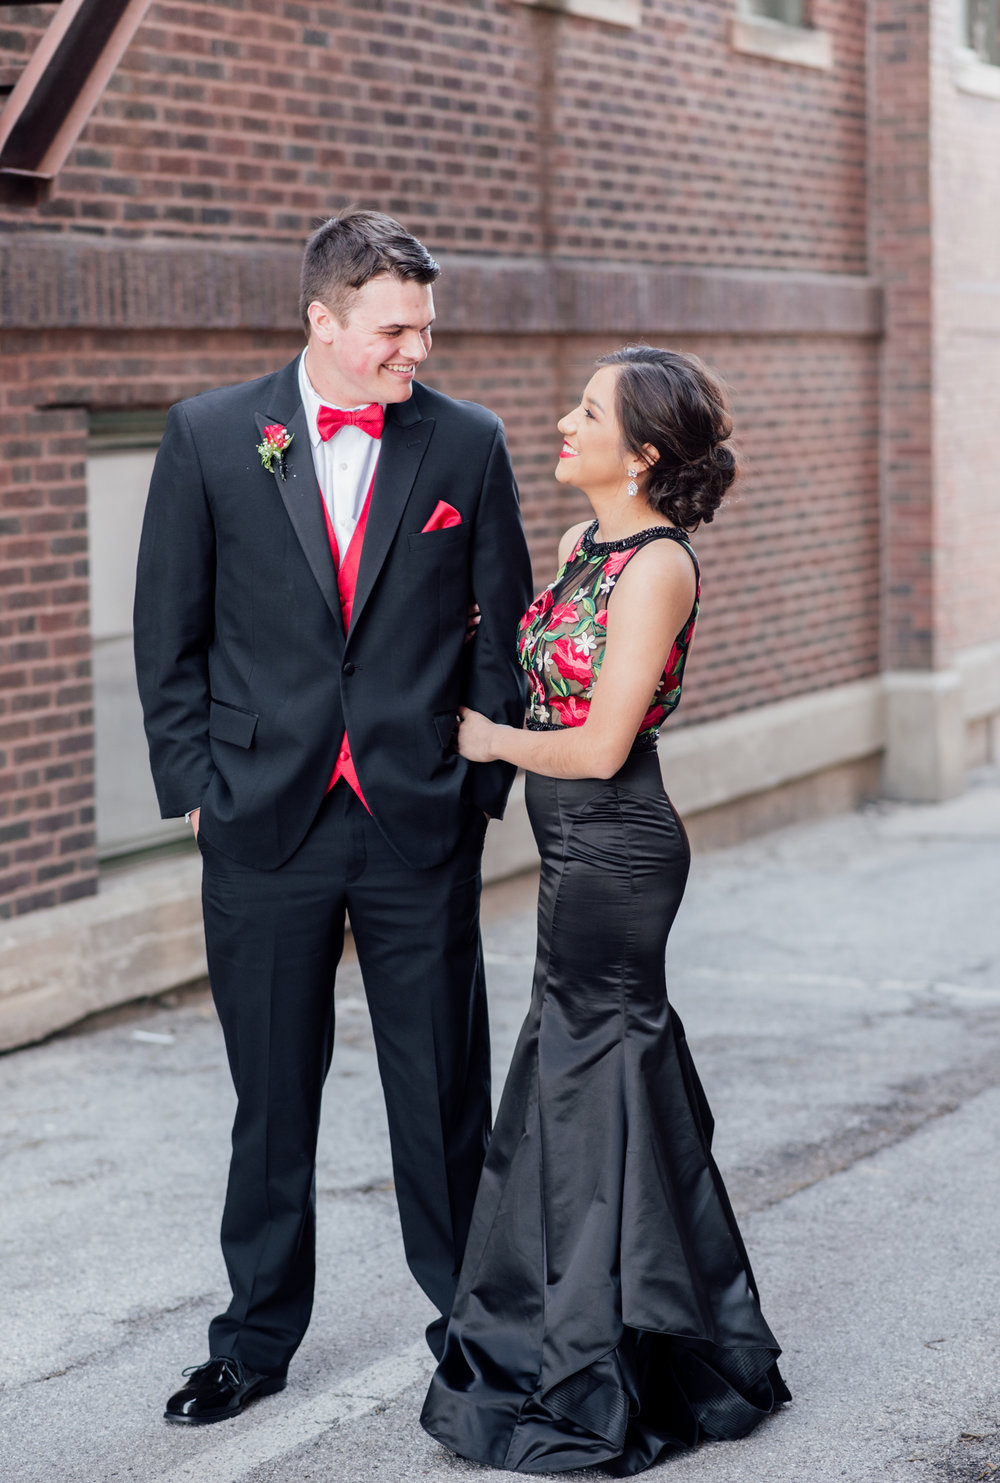 evelyn and quinn muscatine prom pictures-6.jpg